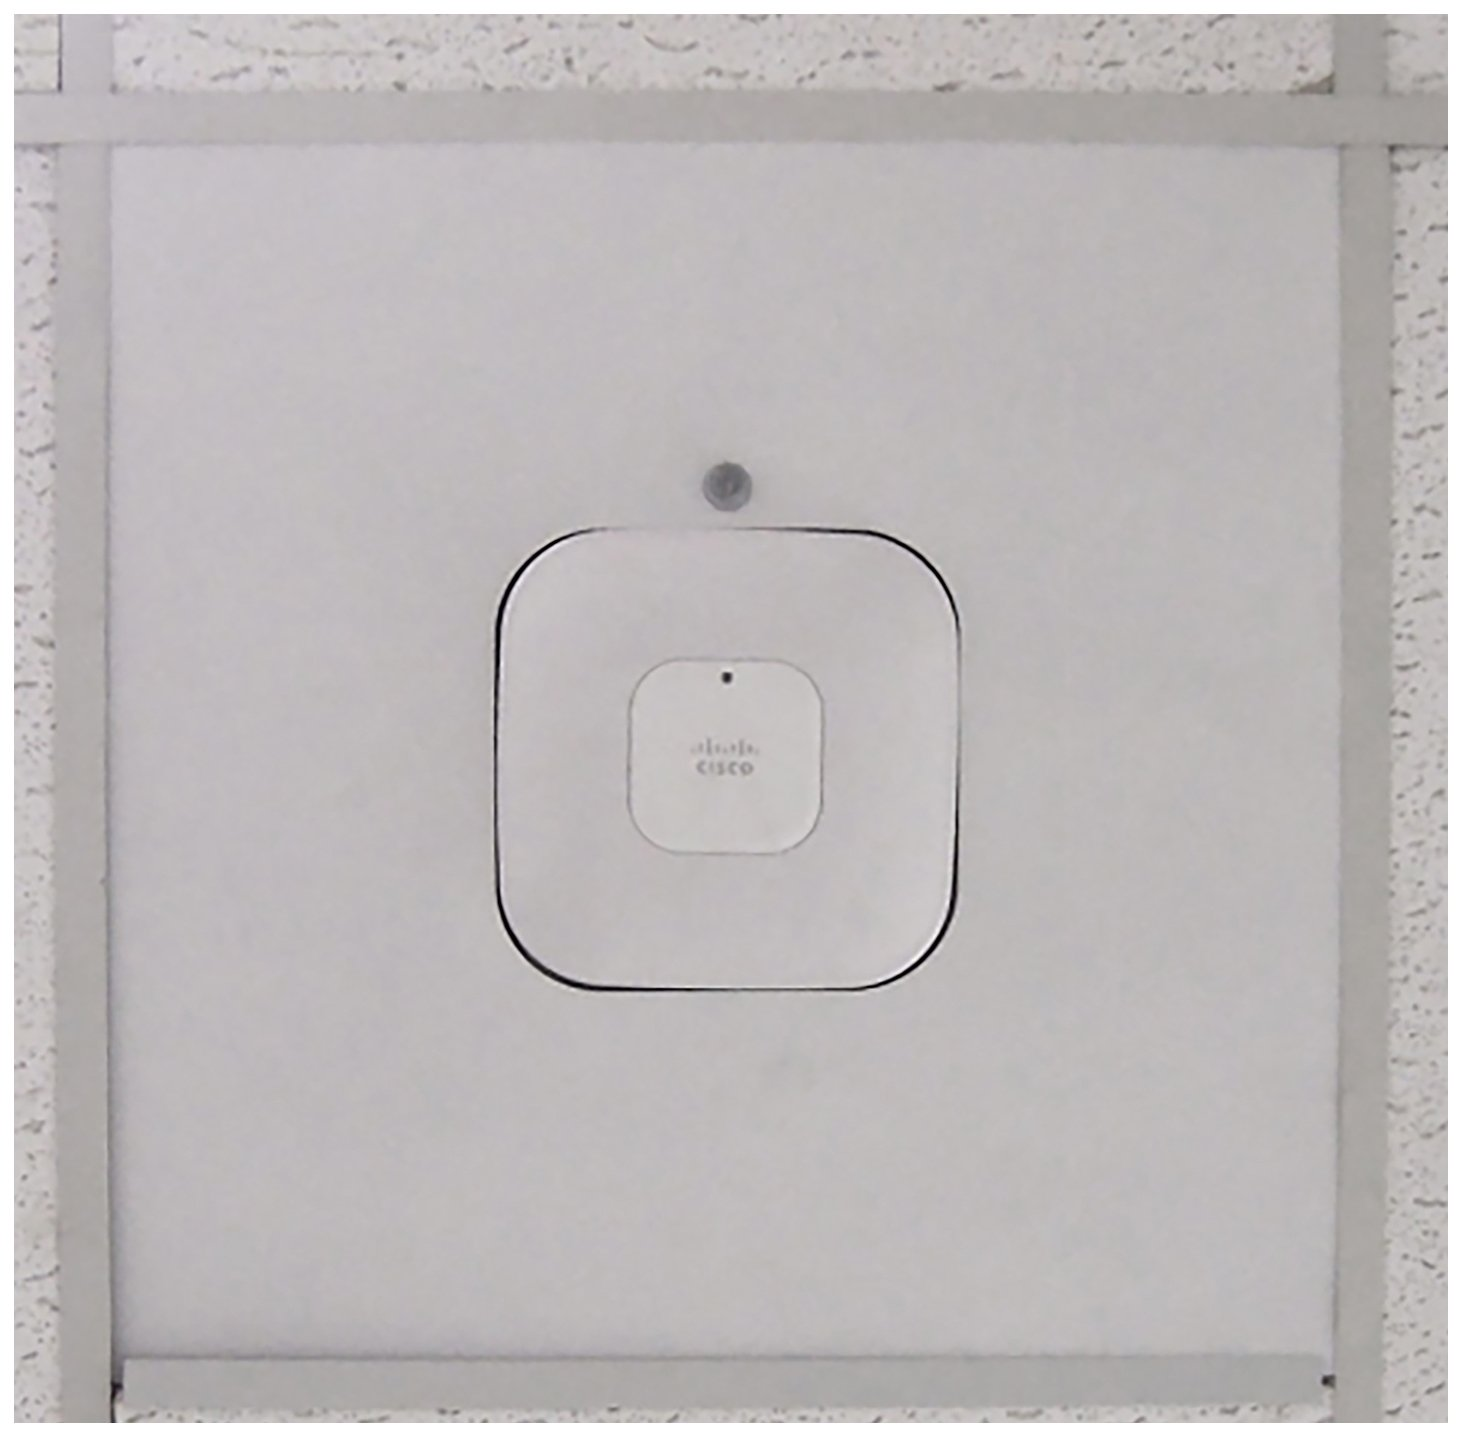 TerraWave TW-CTEN-2X2-1142U 386602 Universal Ceiling Tile Enclosure for Cisco 1142, 2600, 3500 and 3600 Access Points, 24'' x 24''